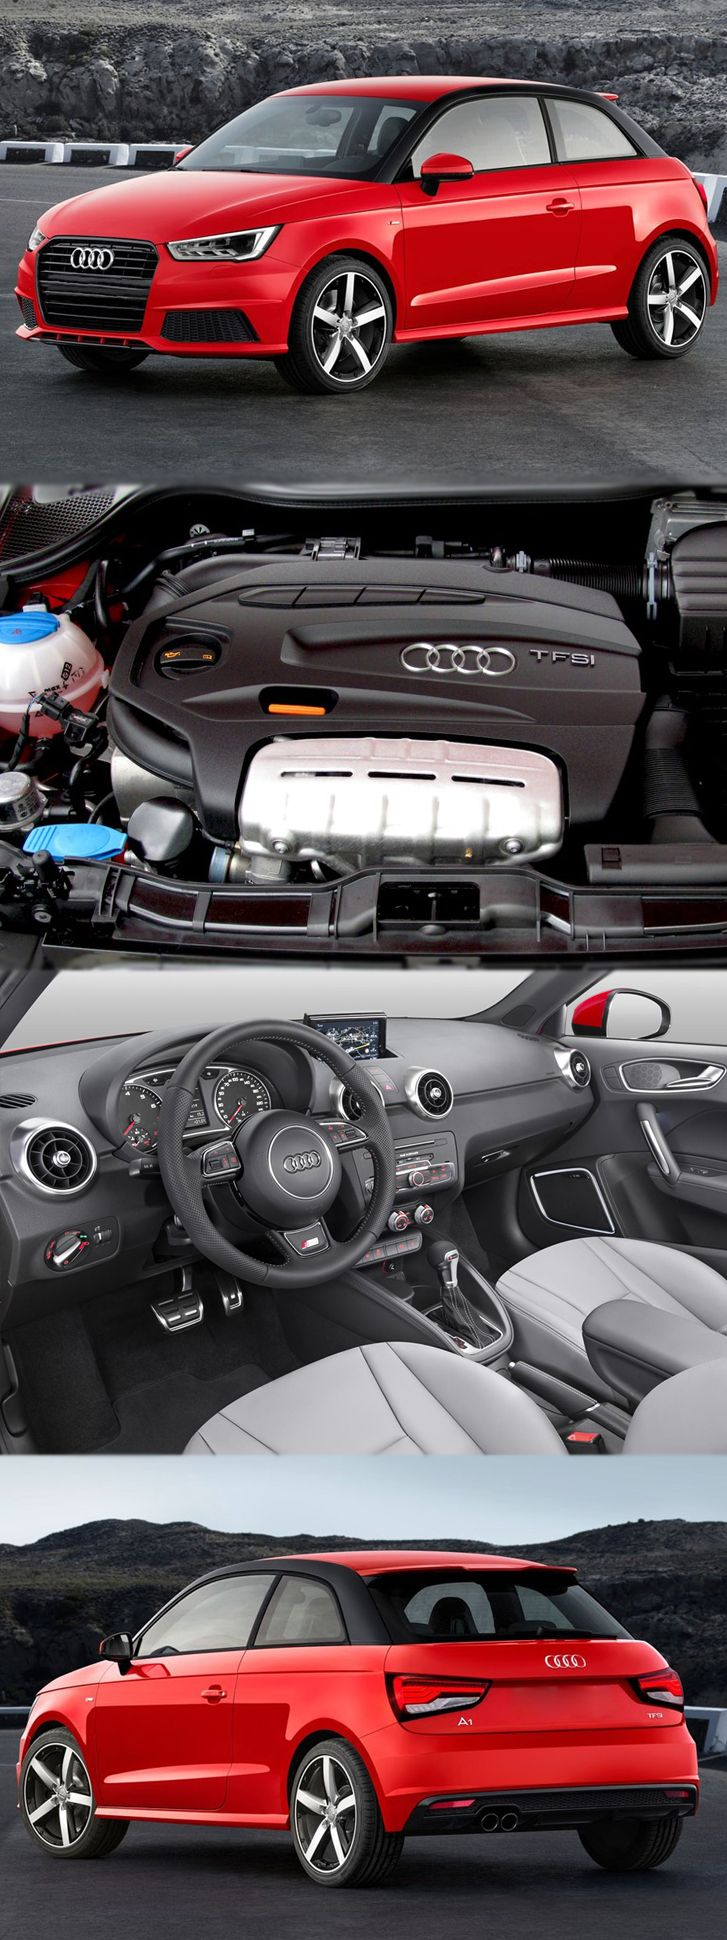 Why We Love #Audi #A1 #Engines? For more information visit link: http://www.enginecompare.co.uk/blog/category/audi/